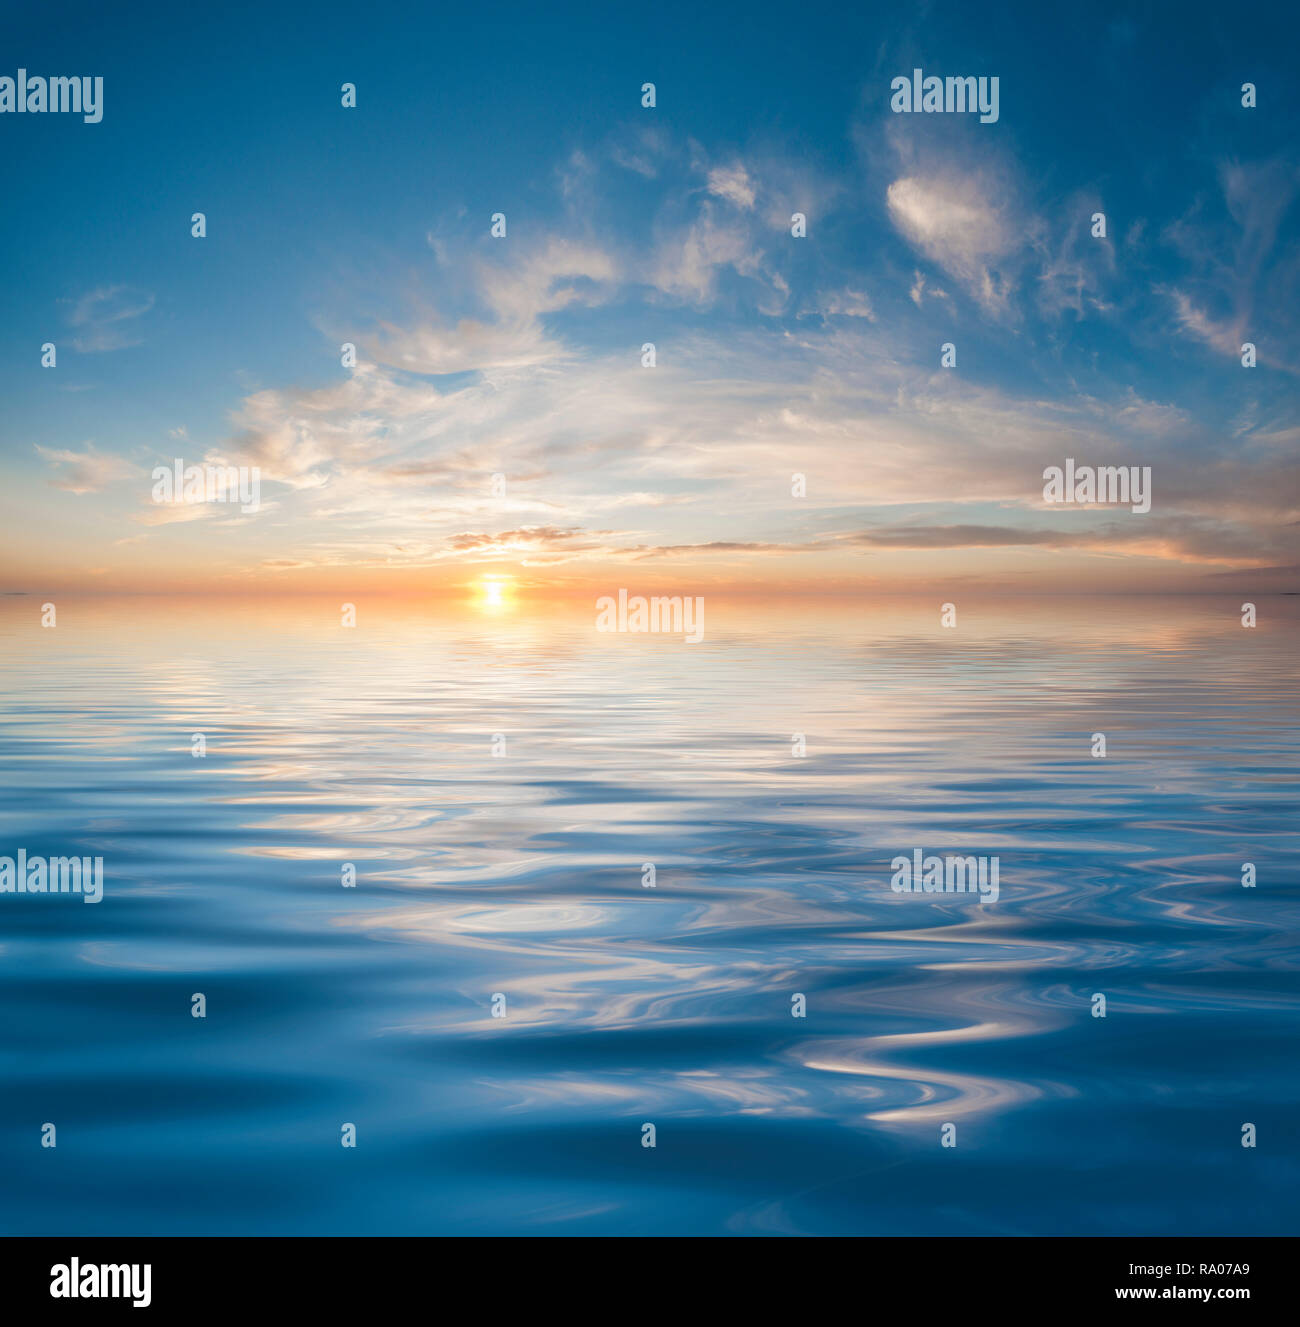 Sunset or sunrise over calm water - Stock Image